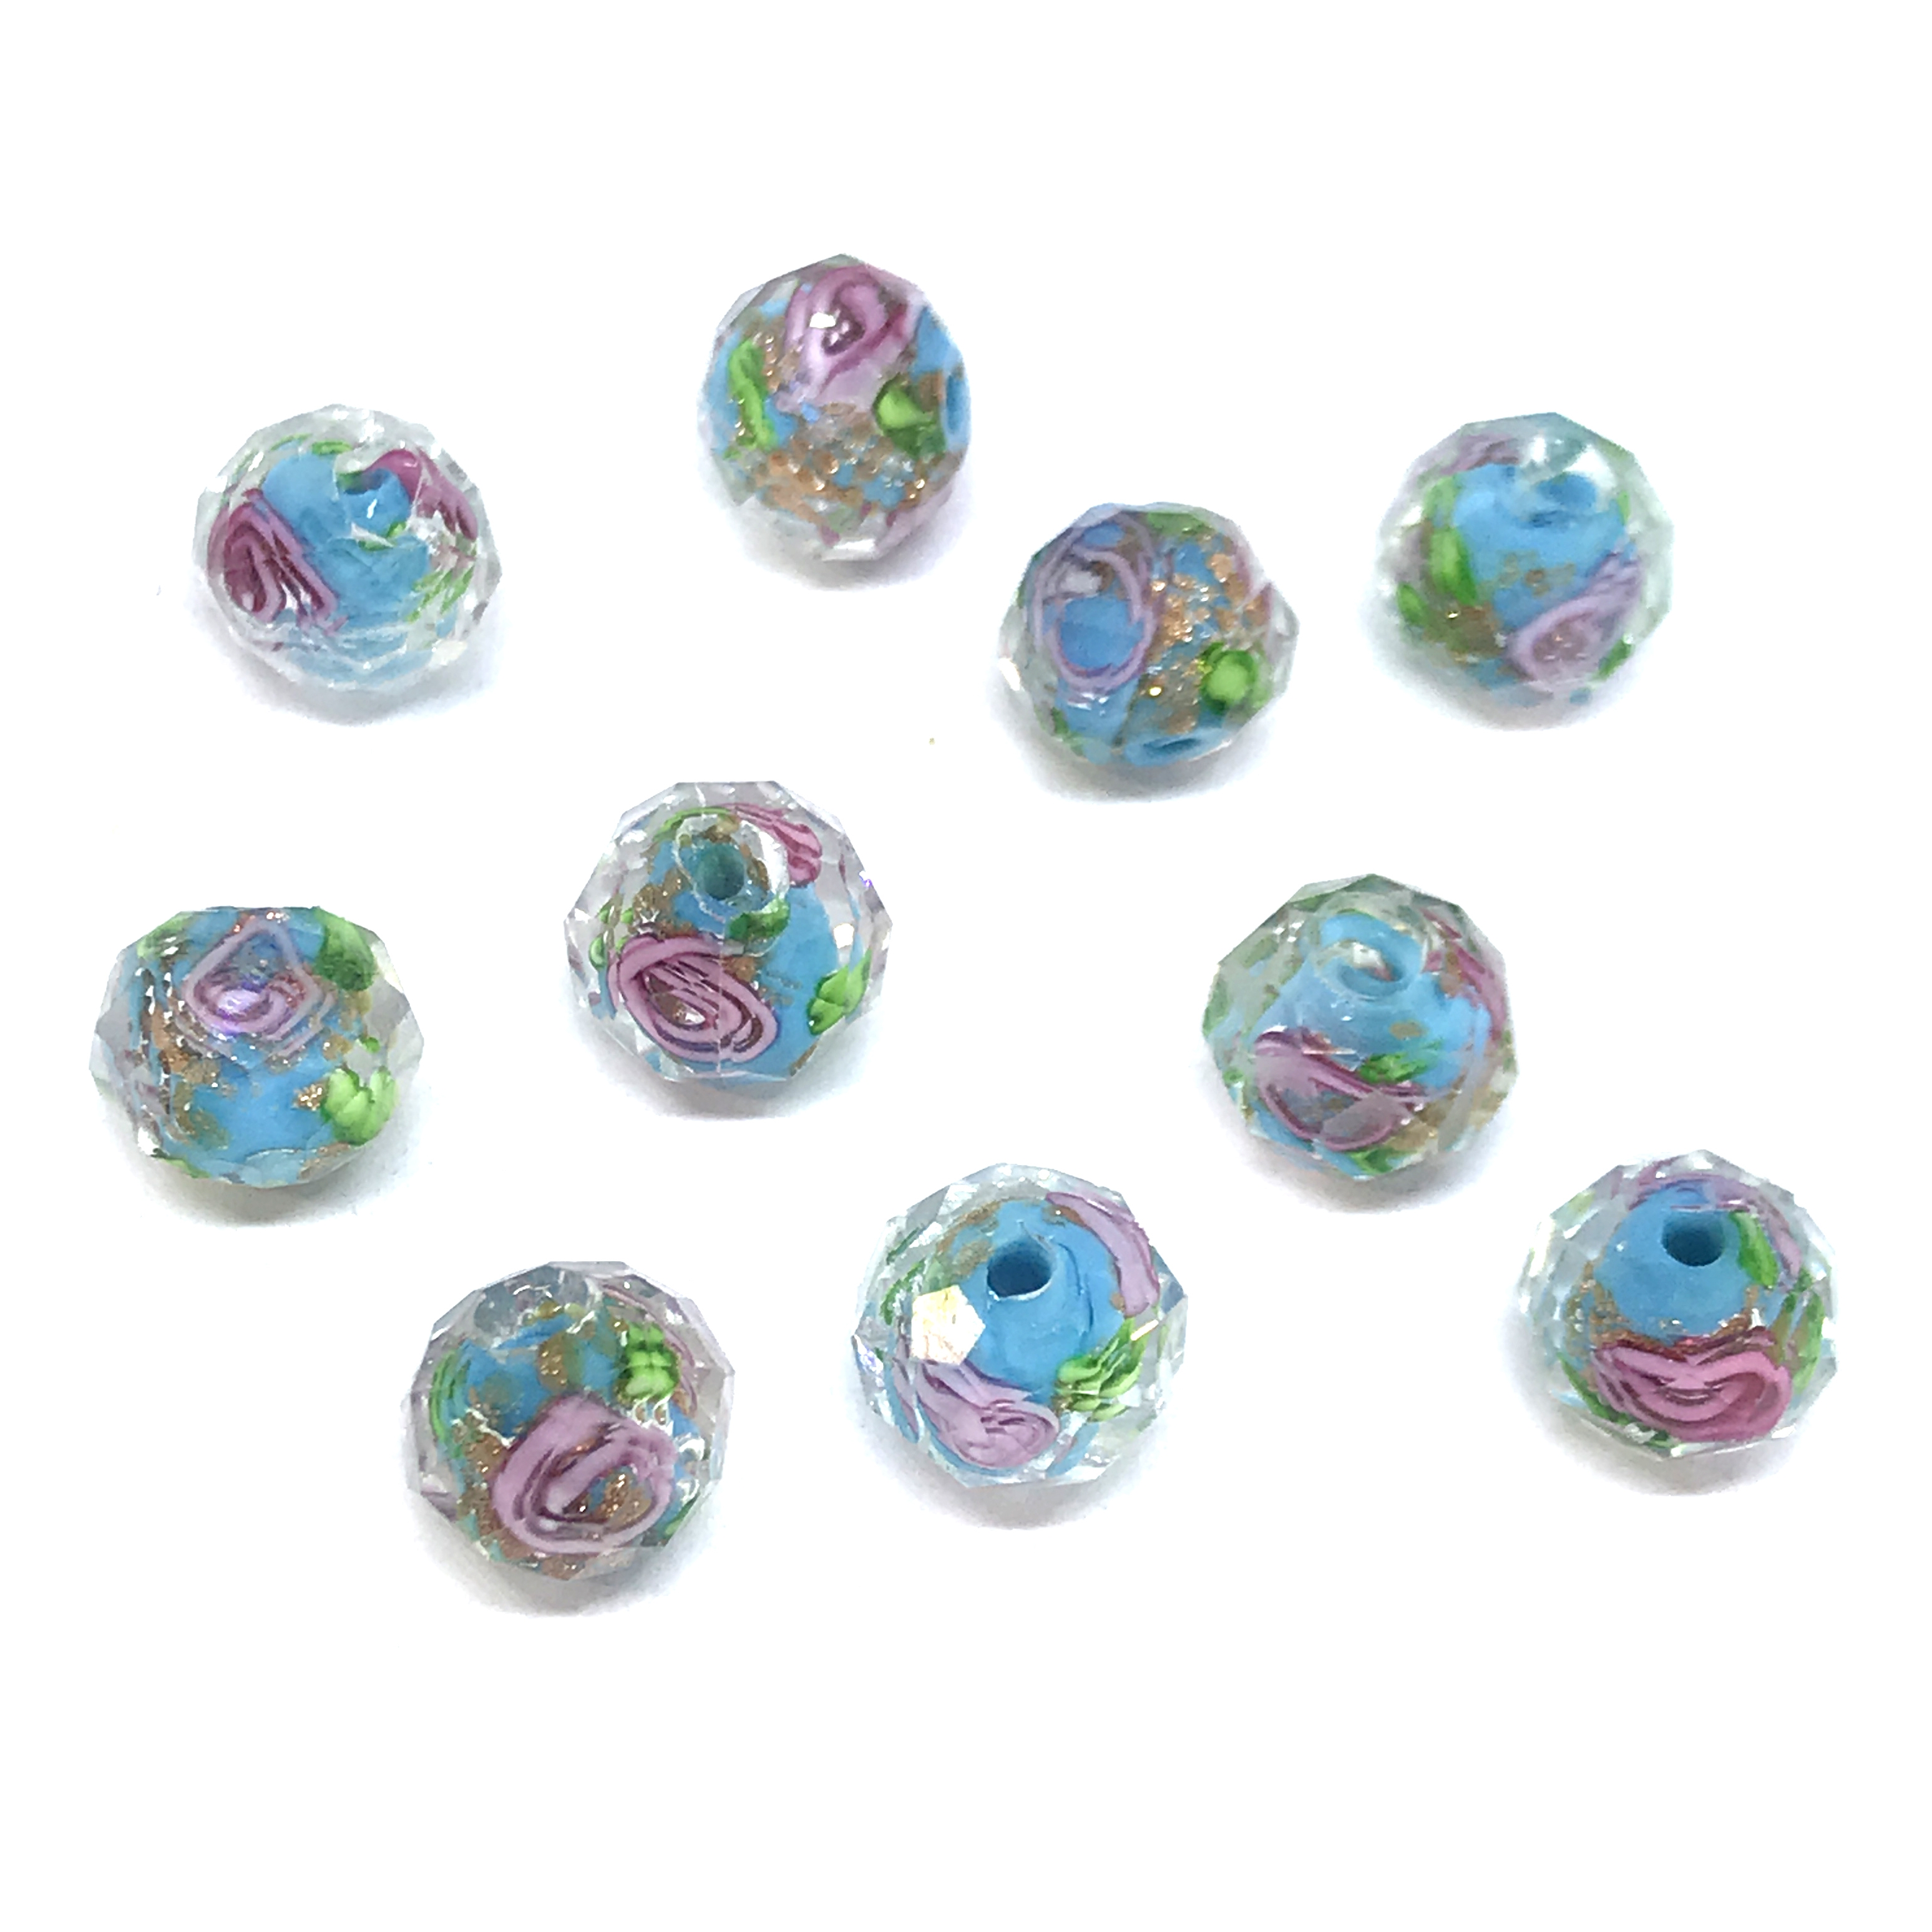 encased glass beads, floral beads, 01020, crystal beads, multi-color, pink rose, floral, blue beads, turquoise, glass beads, glass, faceted beads, facets, b'sue boutiques, jewelry supplies, beads, 8x10mm